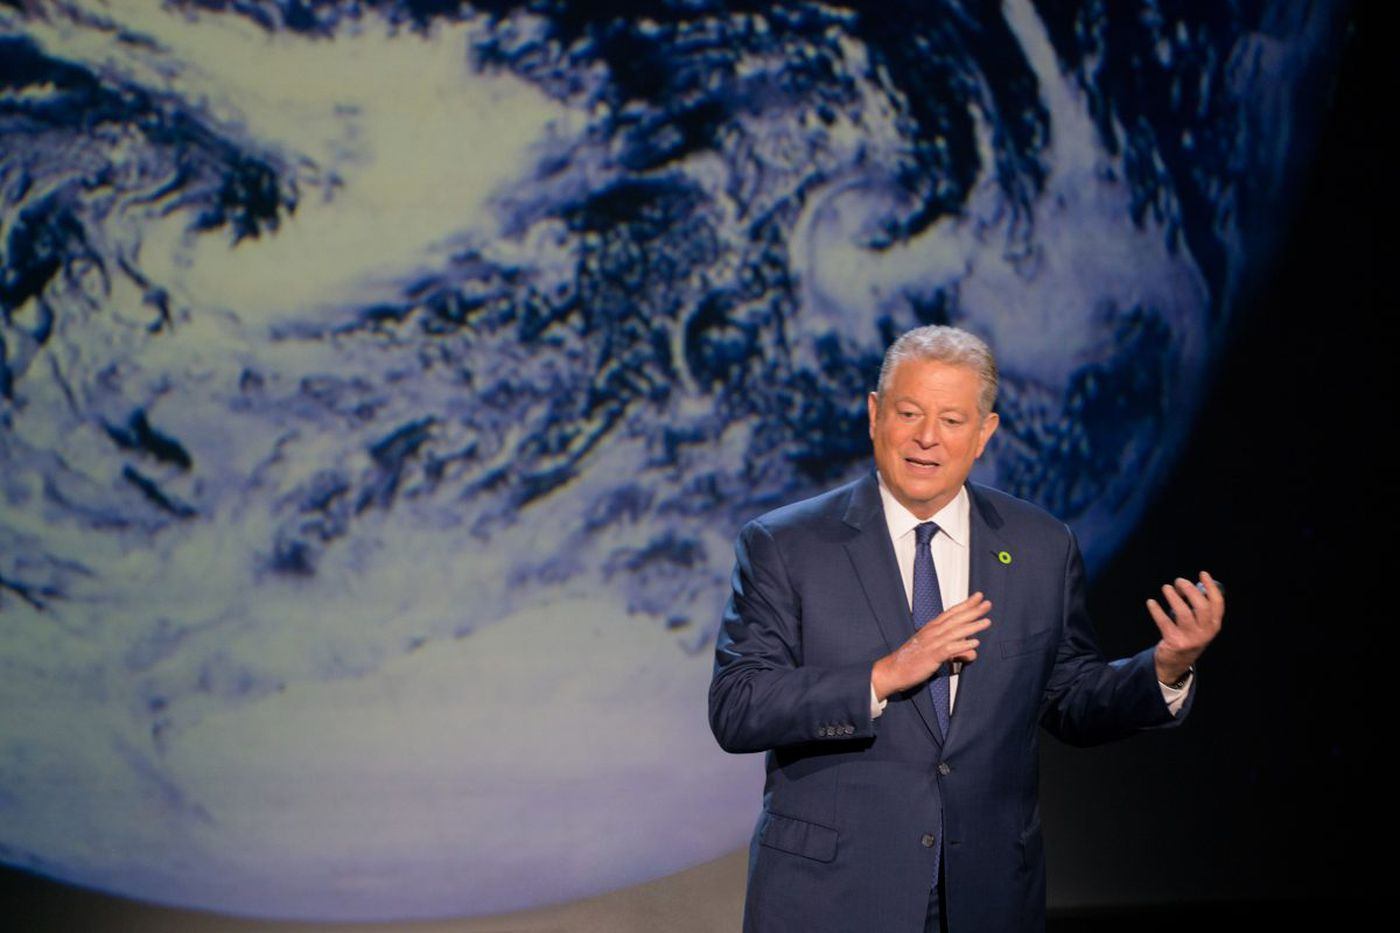 Al Gore talks about unfriending Trump and the state of his green crusade in 'An Inconvenient Sequel'